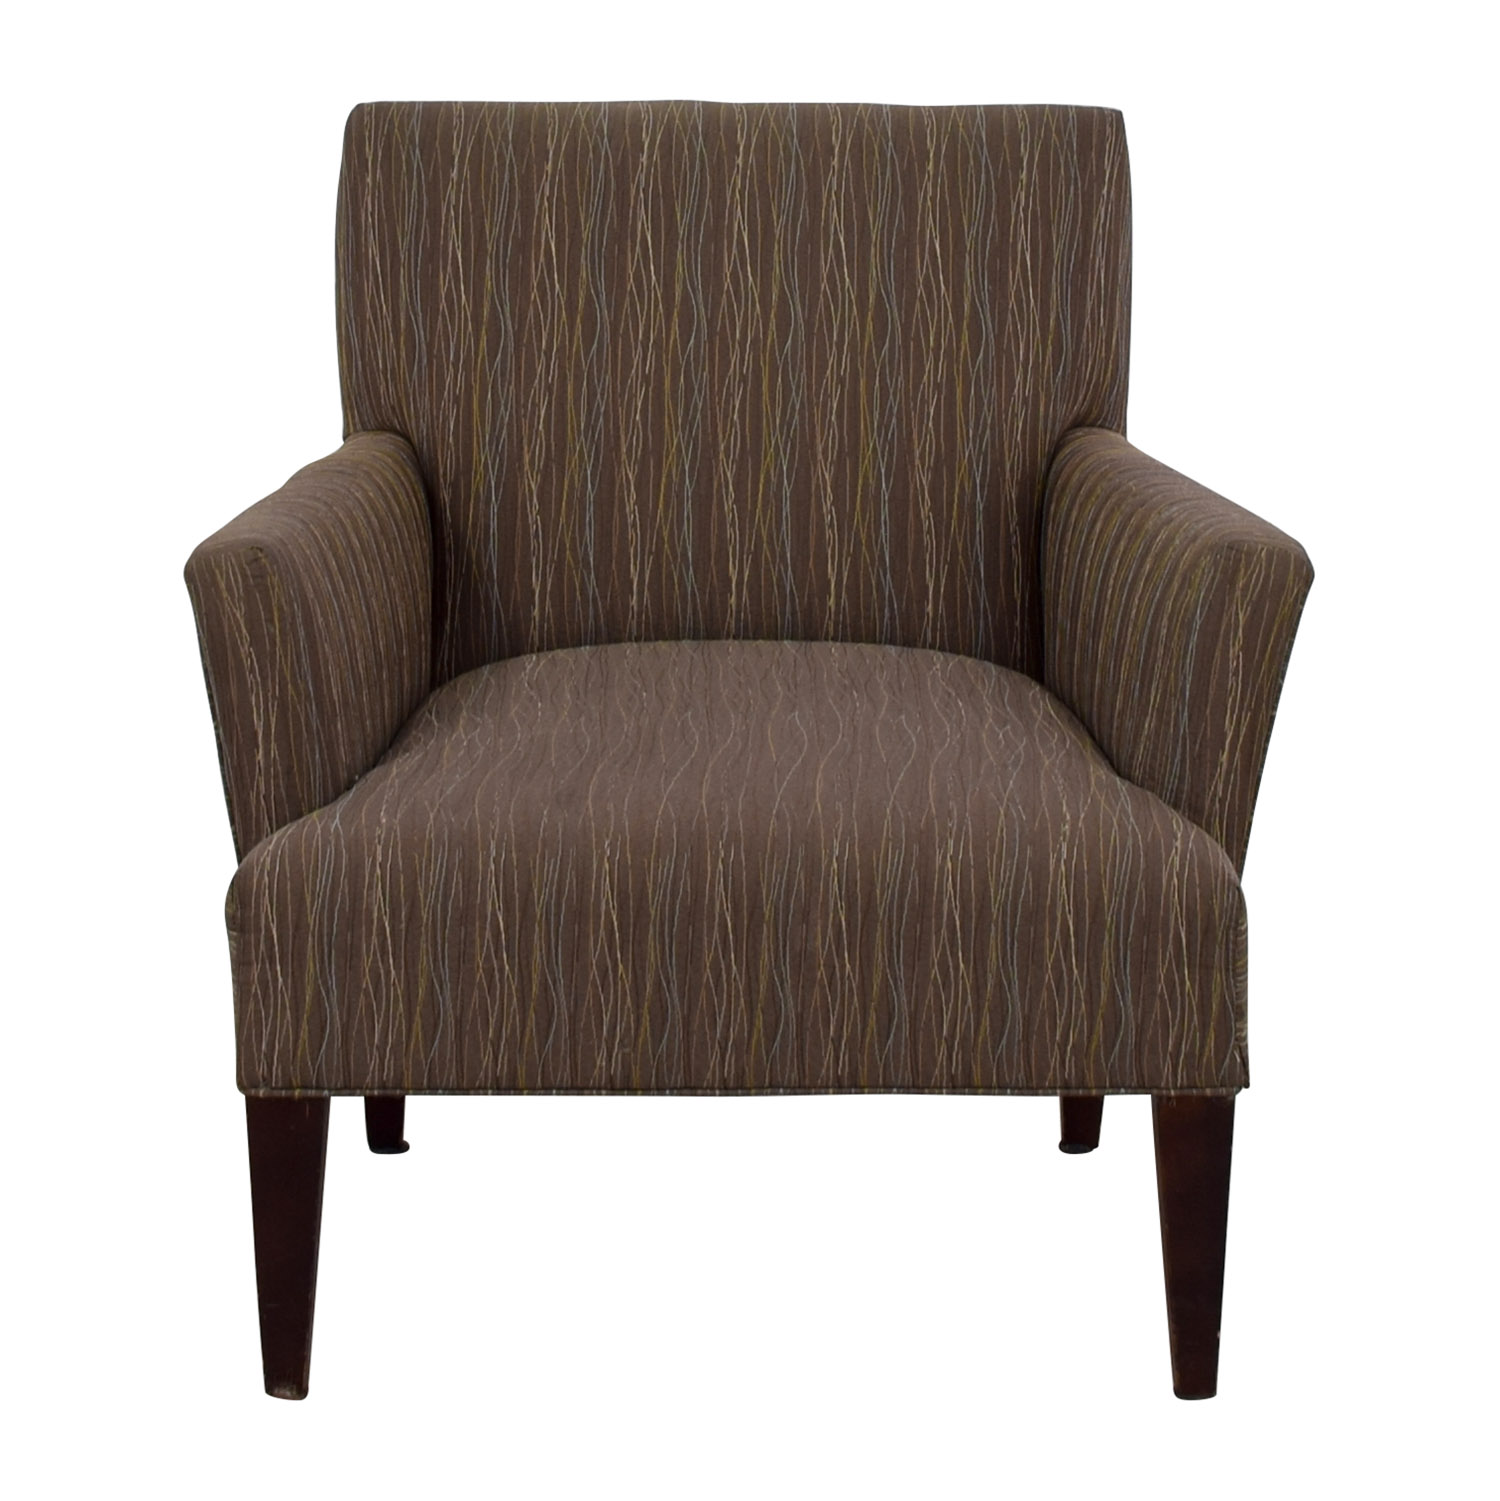 buy Room & Board Patterned Chair Room & Board